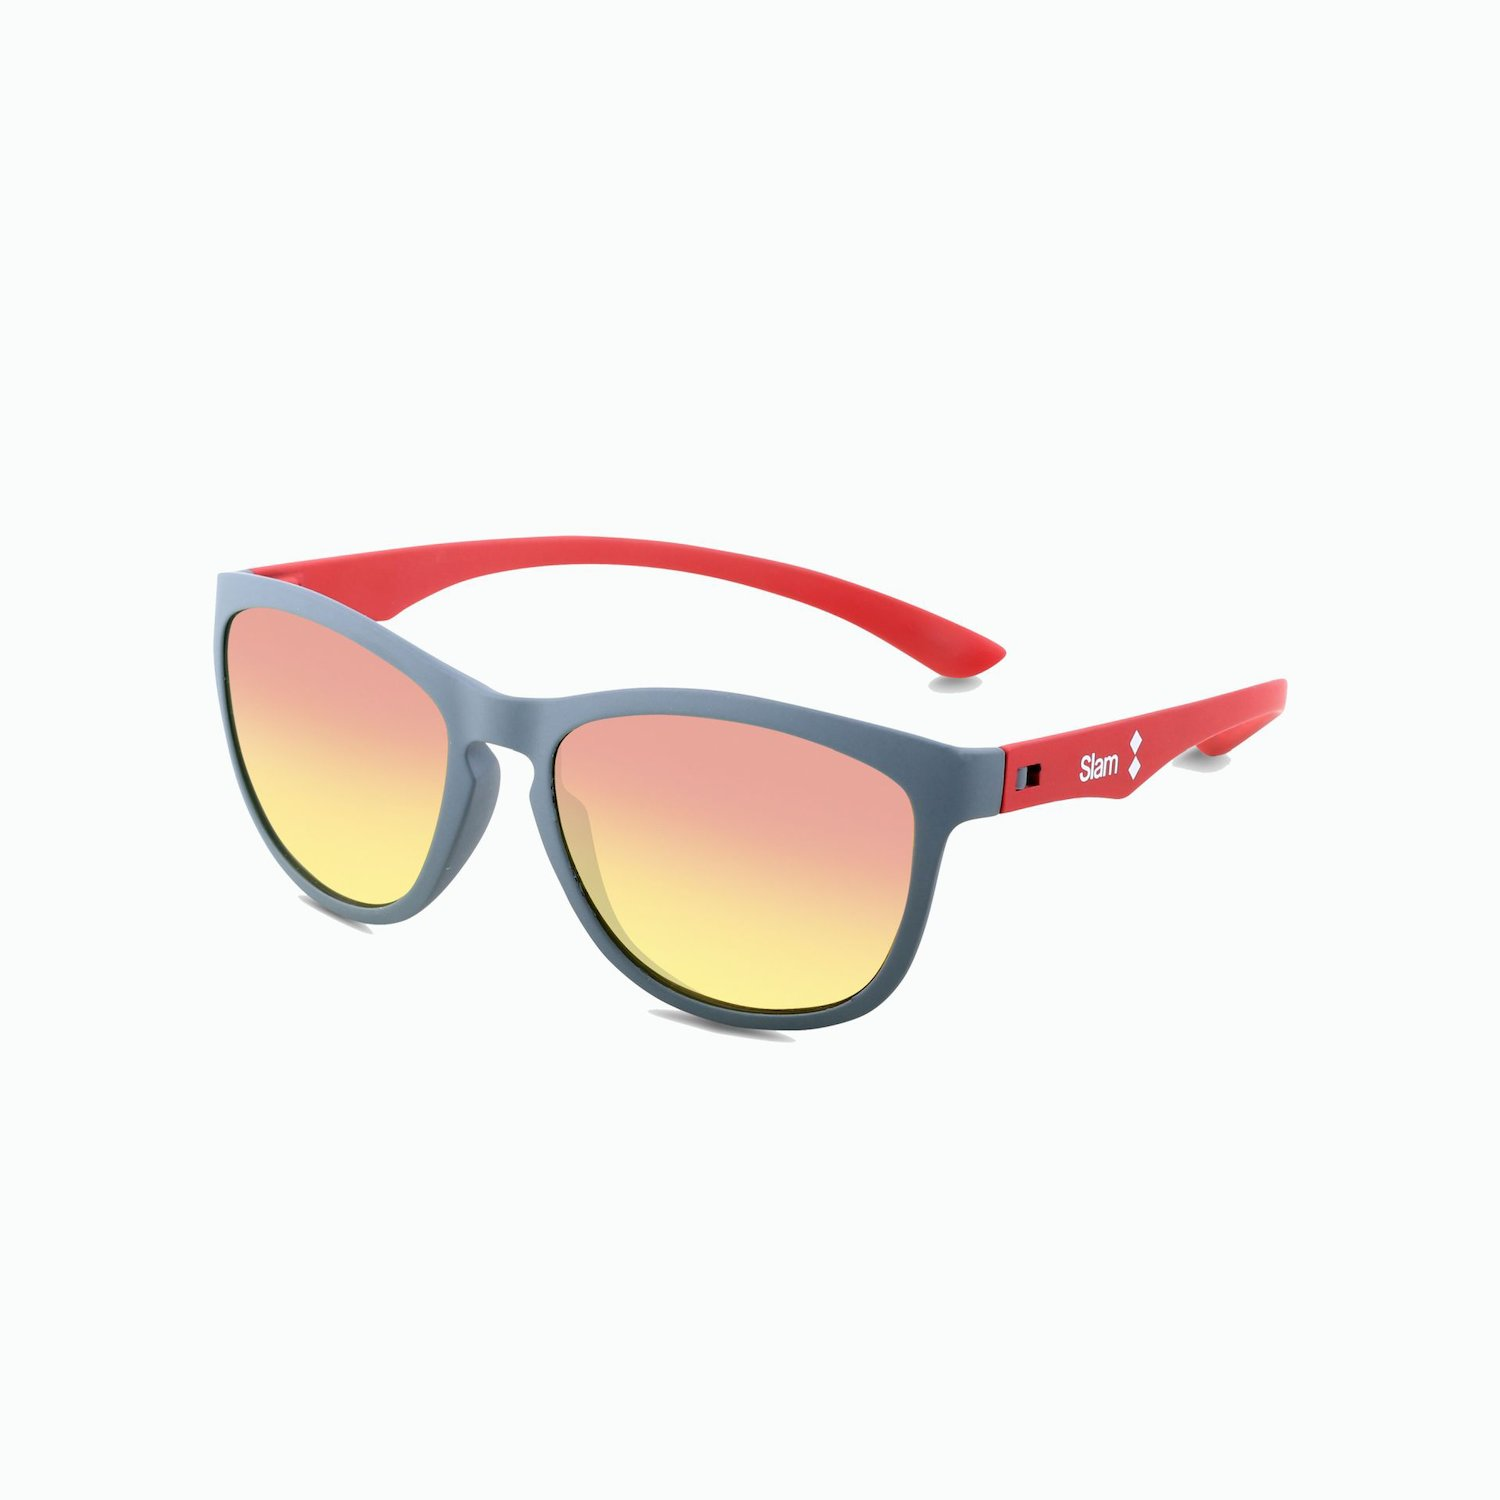 Sunglasses Grey 10 KNT - Orange